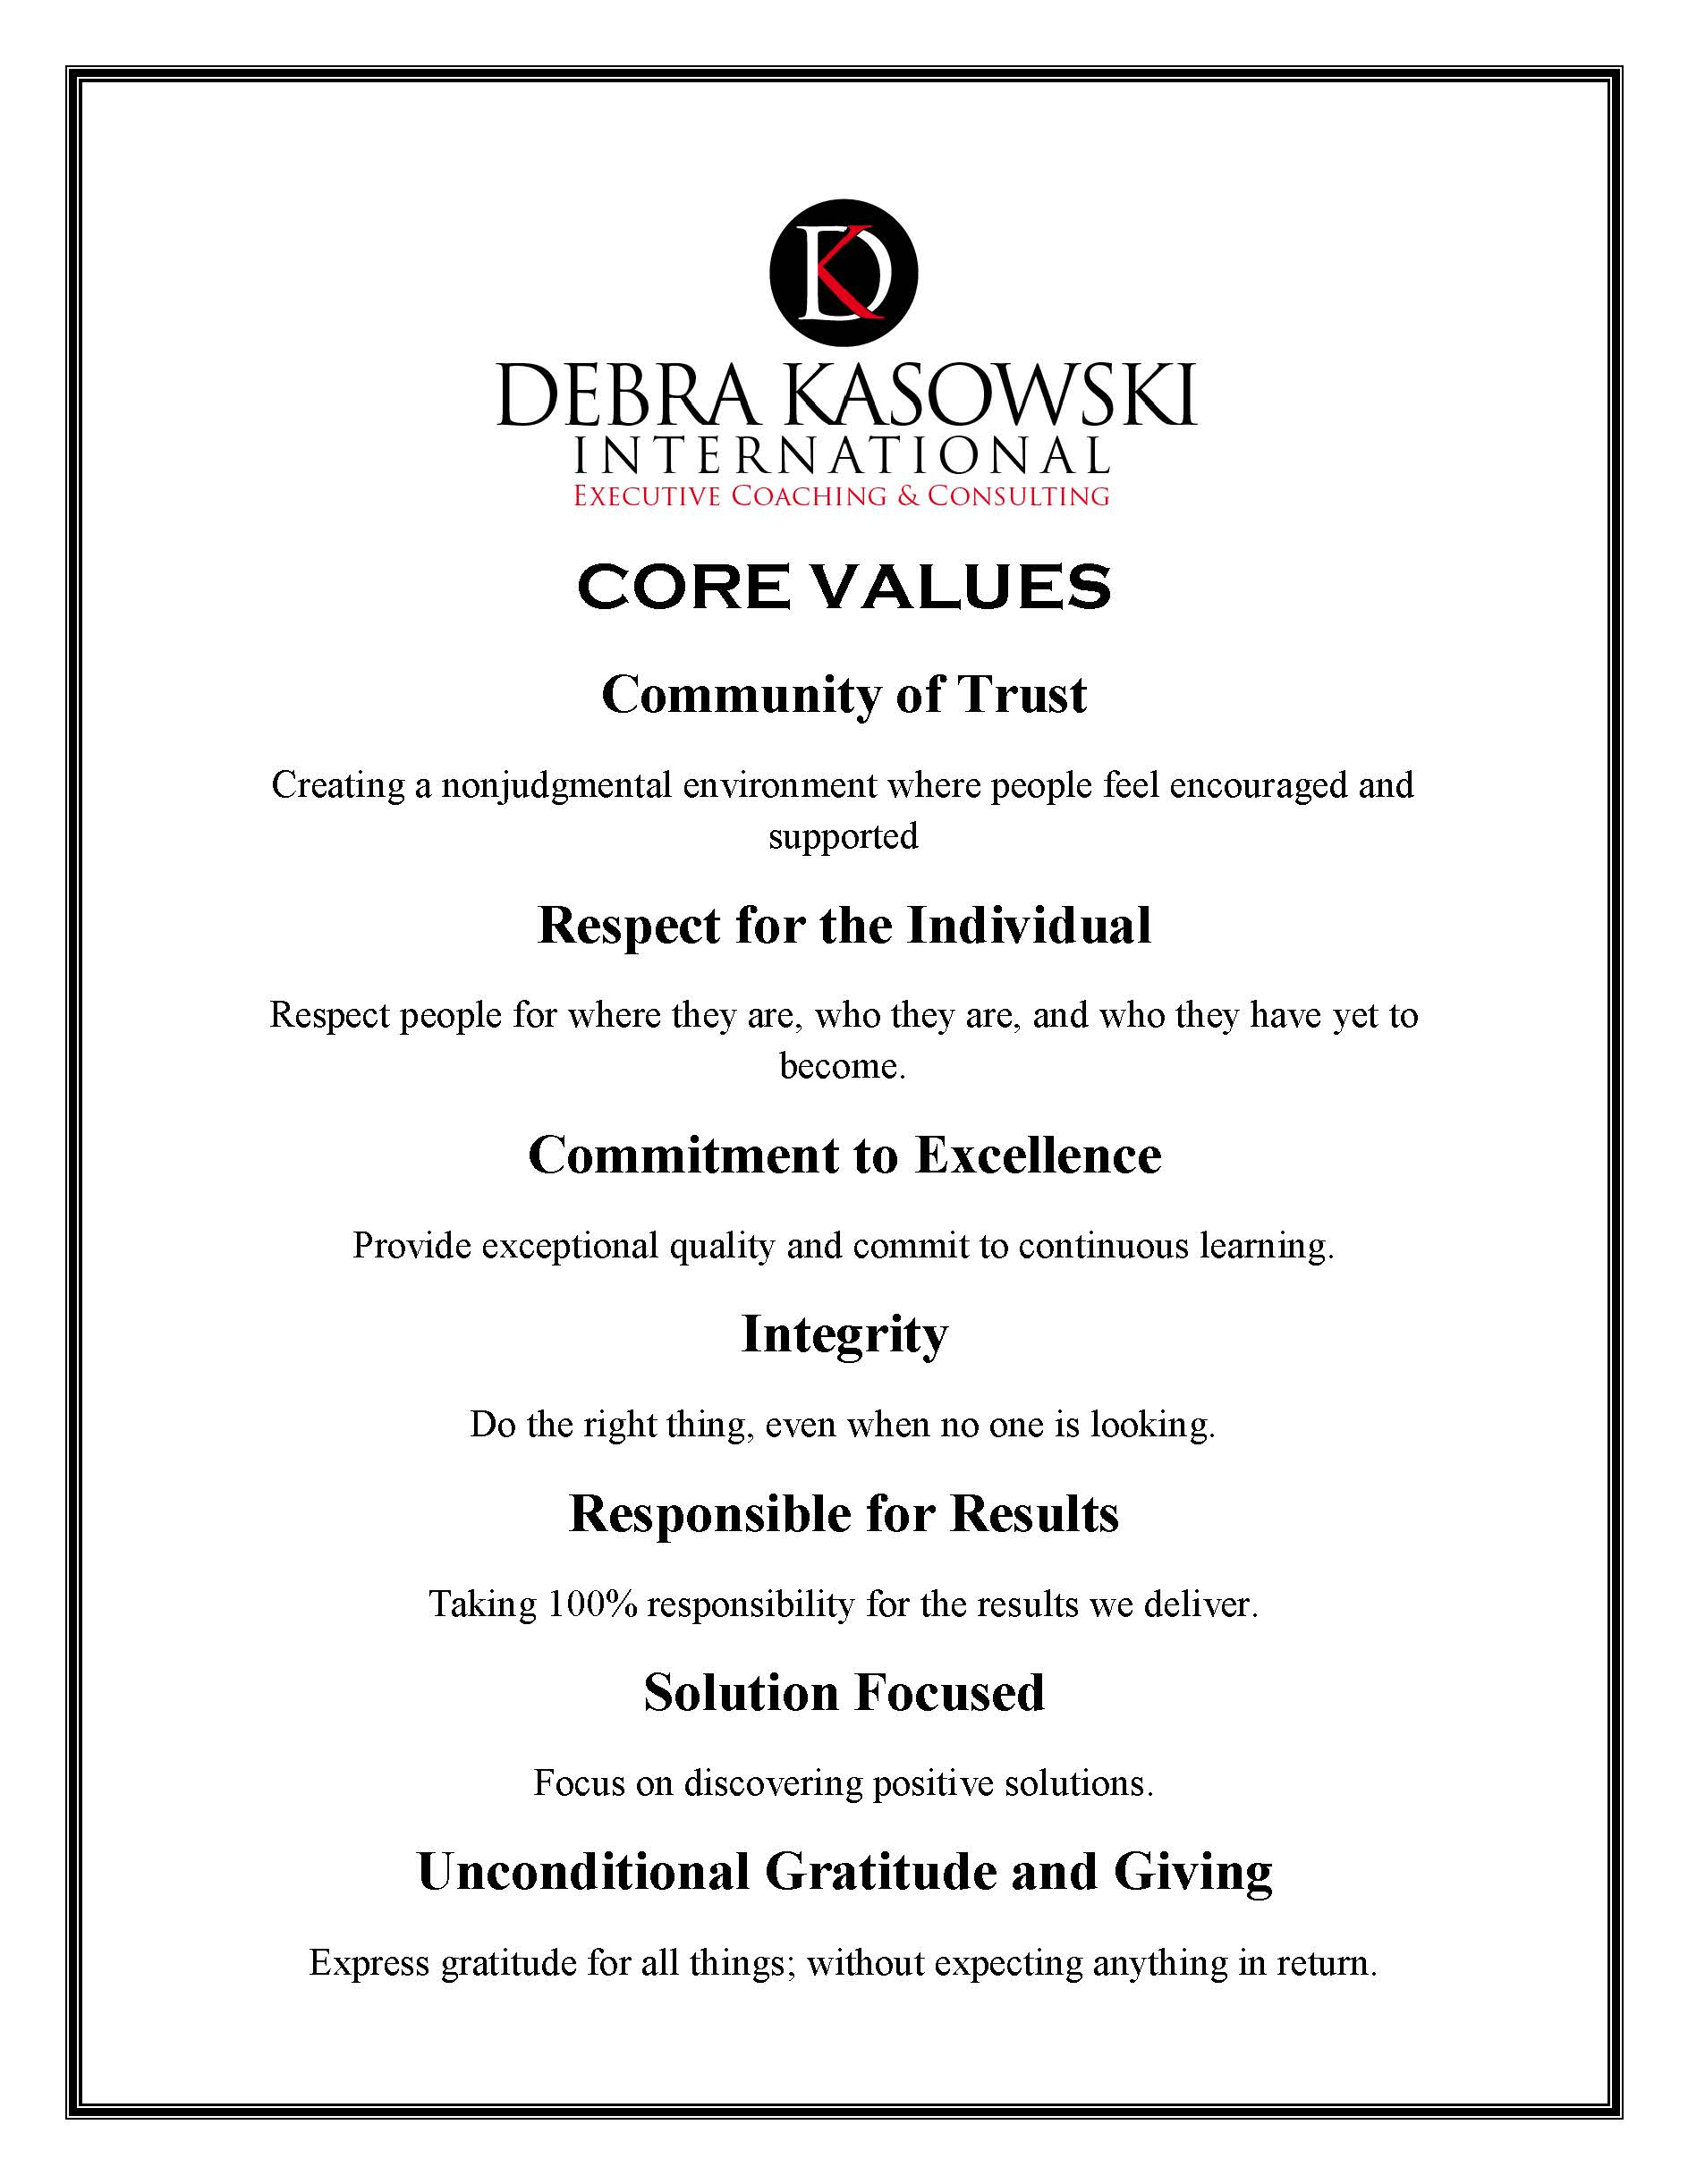 DKI VisionMissionWhyCoreValues_Page_2